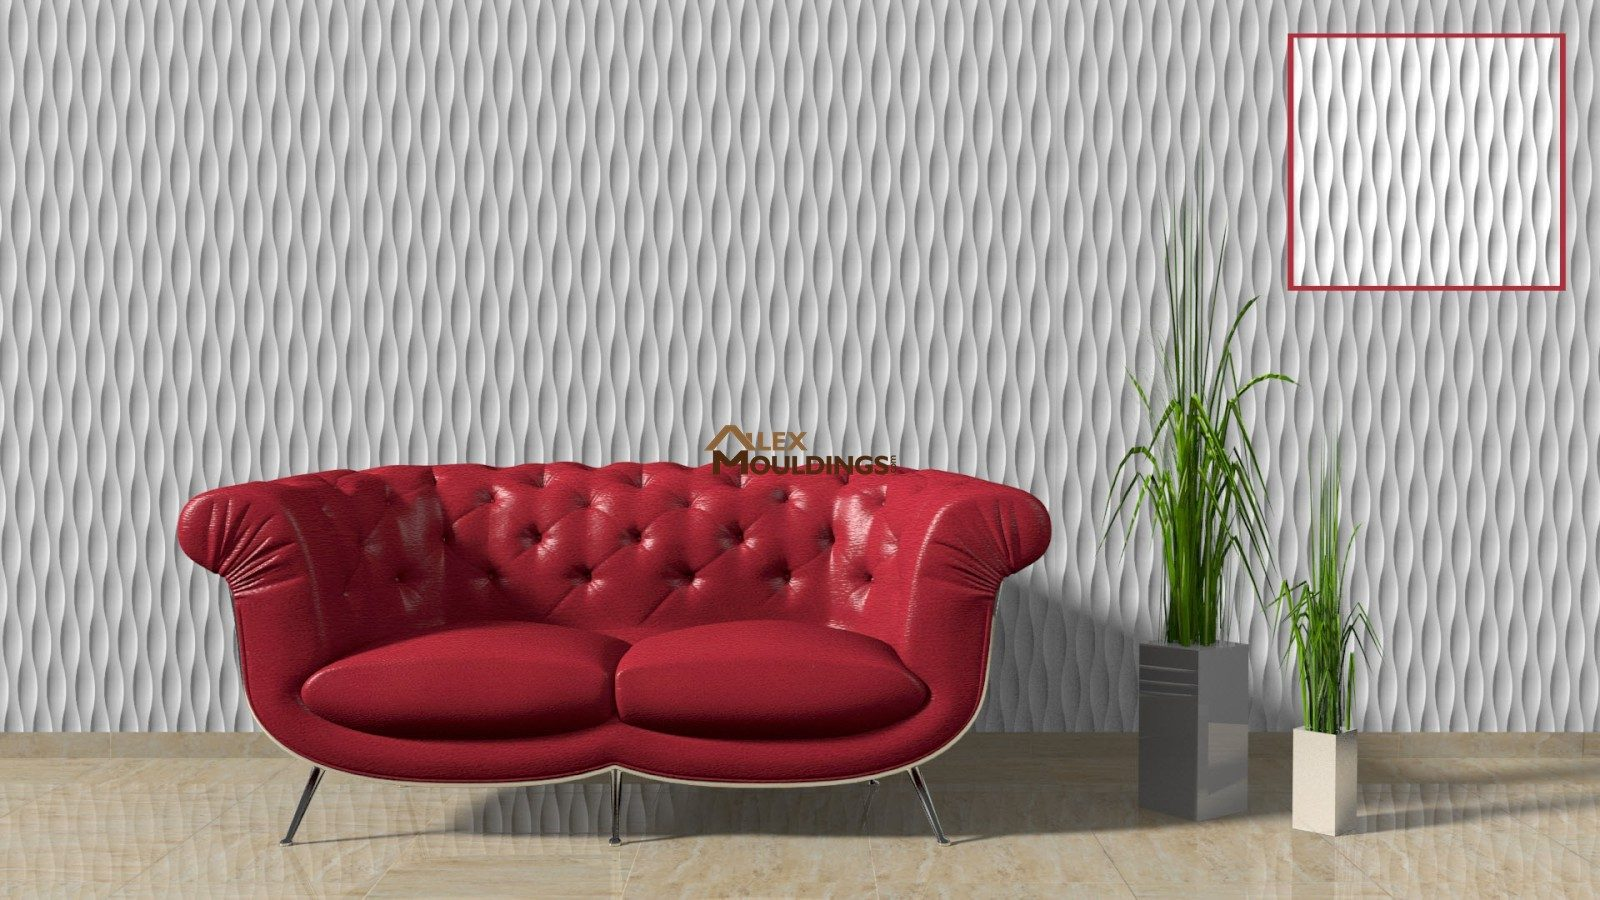 3D vertical waves paneling